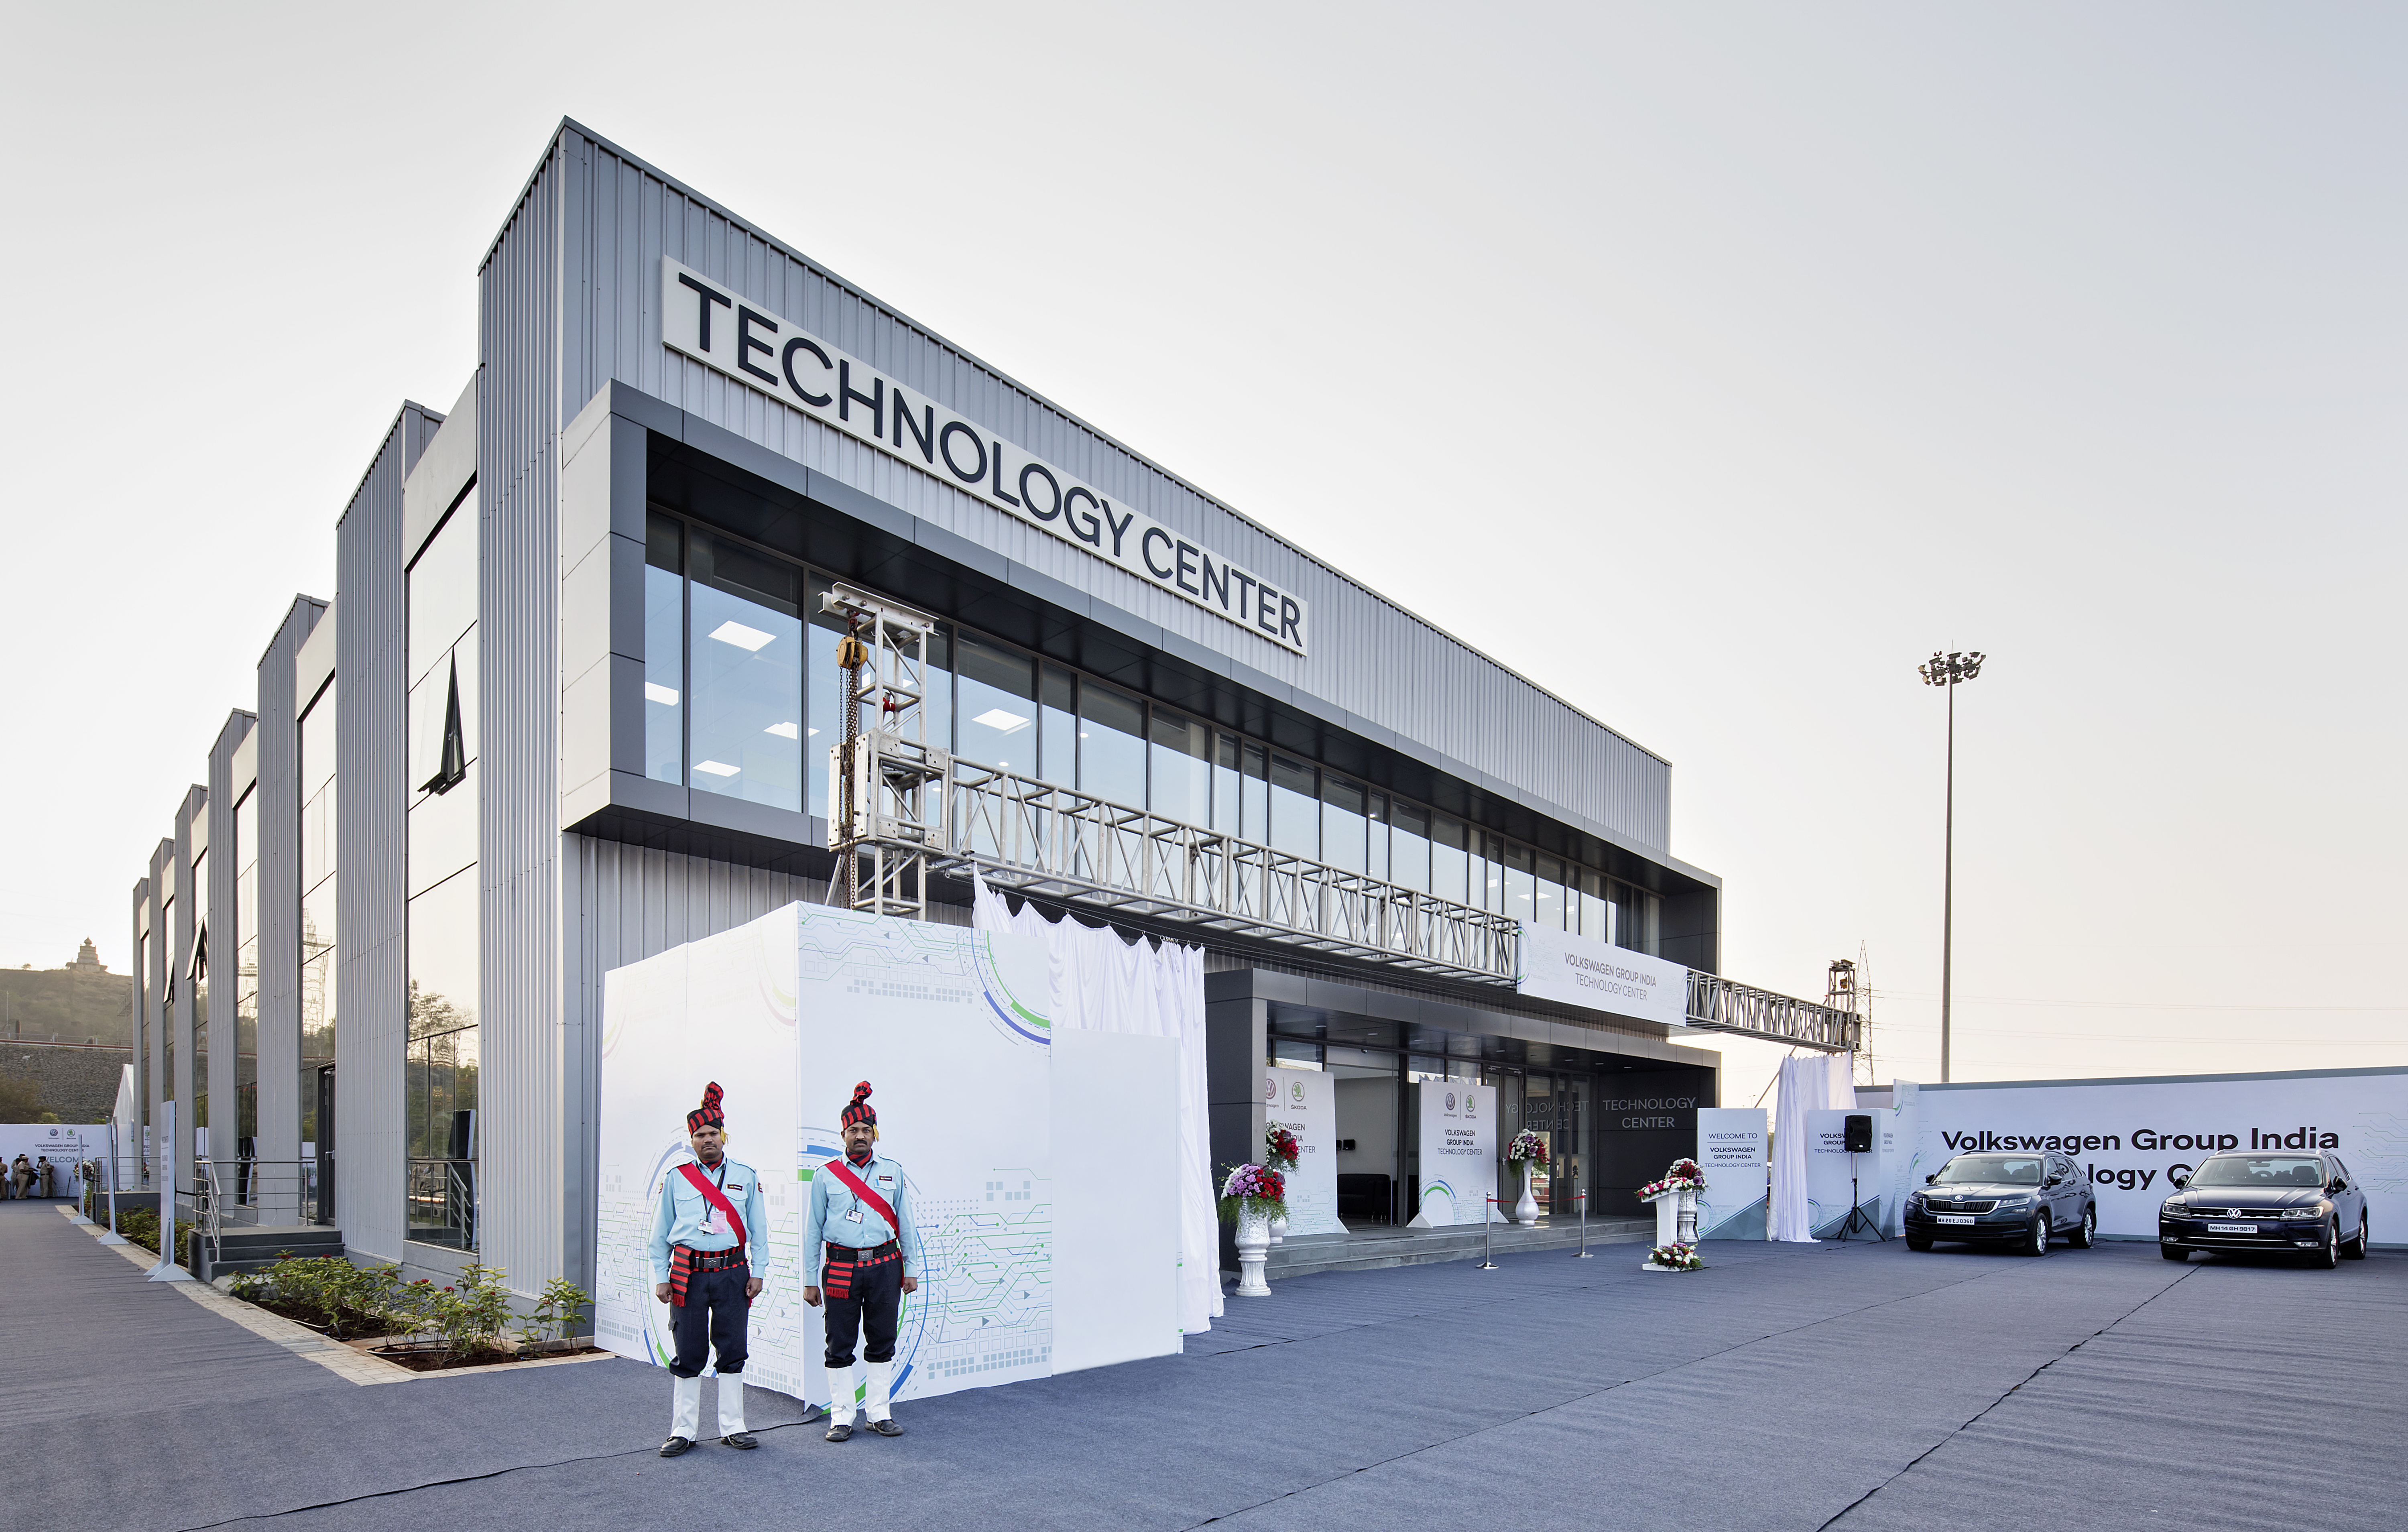 INDIA 2 0 Project: ŠKODA and Volkswagen Group India open new